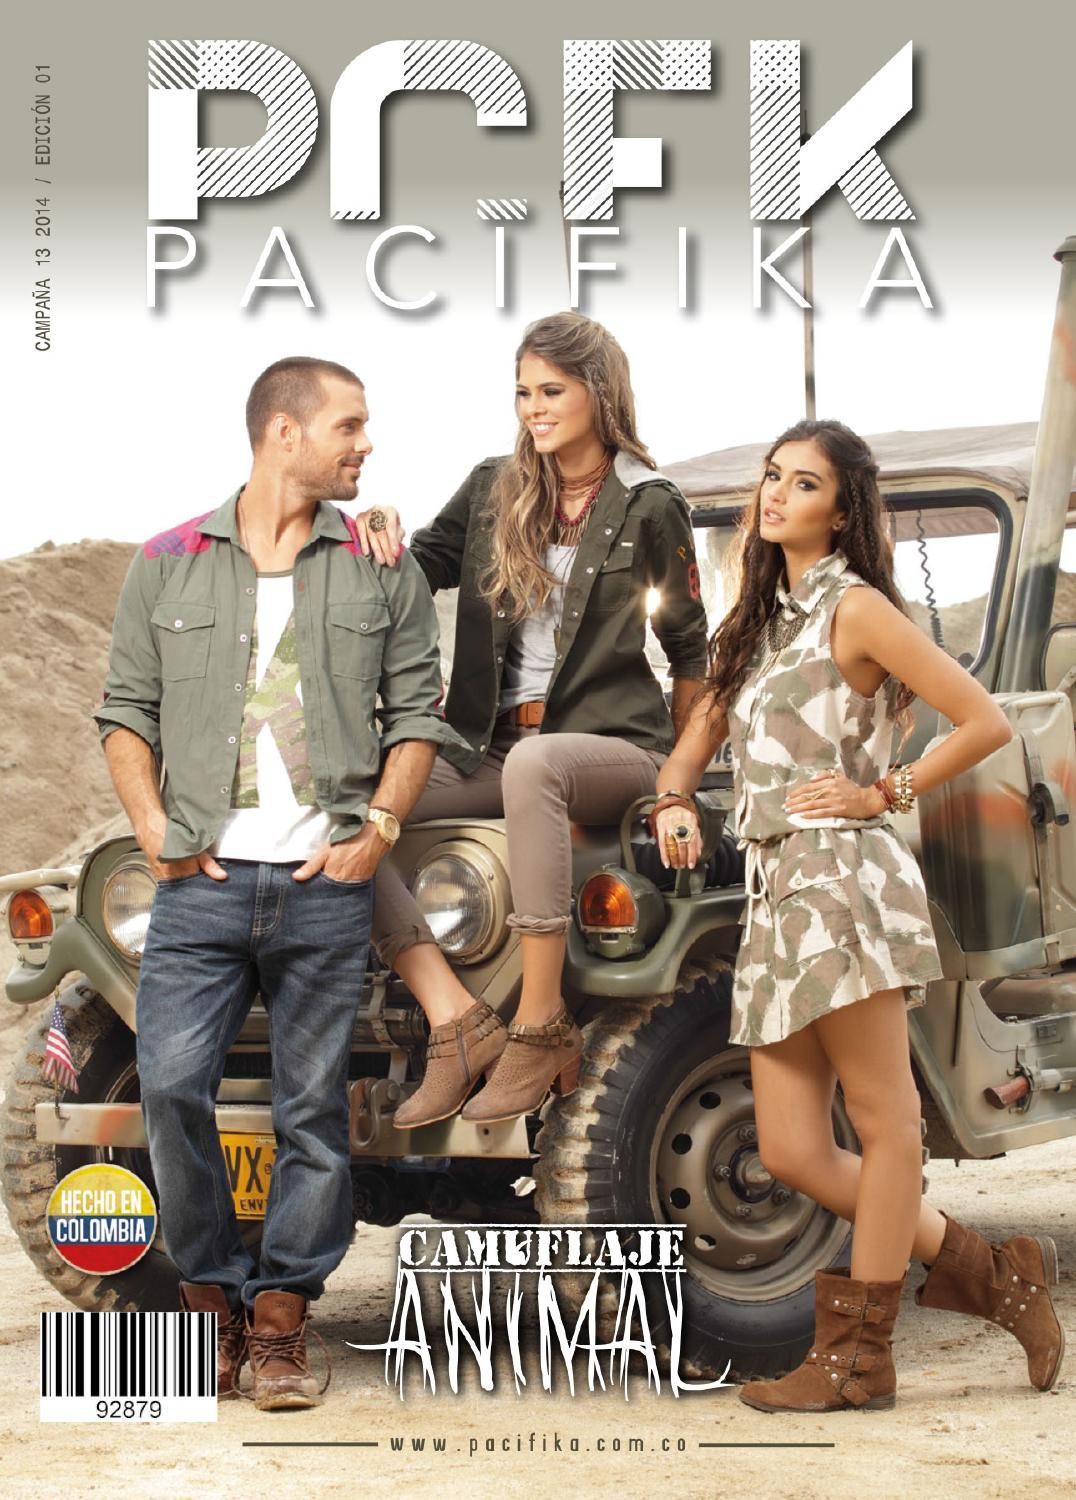 1104f5ff6 PCFK Pacifika C13 Ed. 02 2014 by PCFKPacifika - issuu